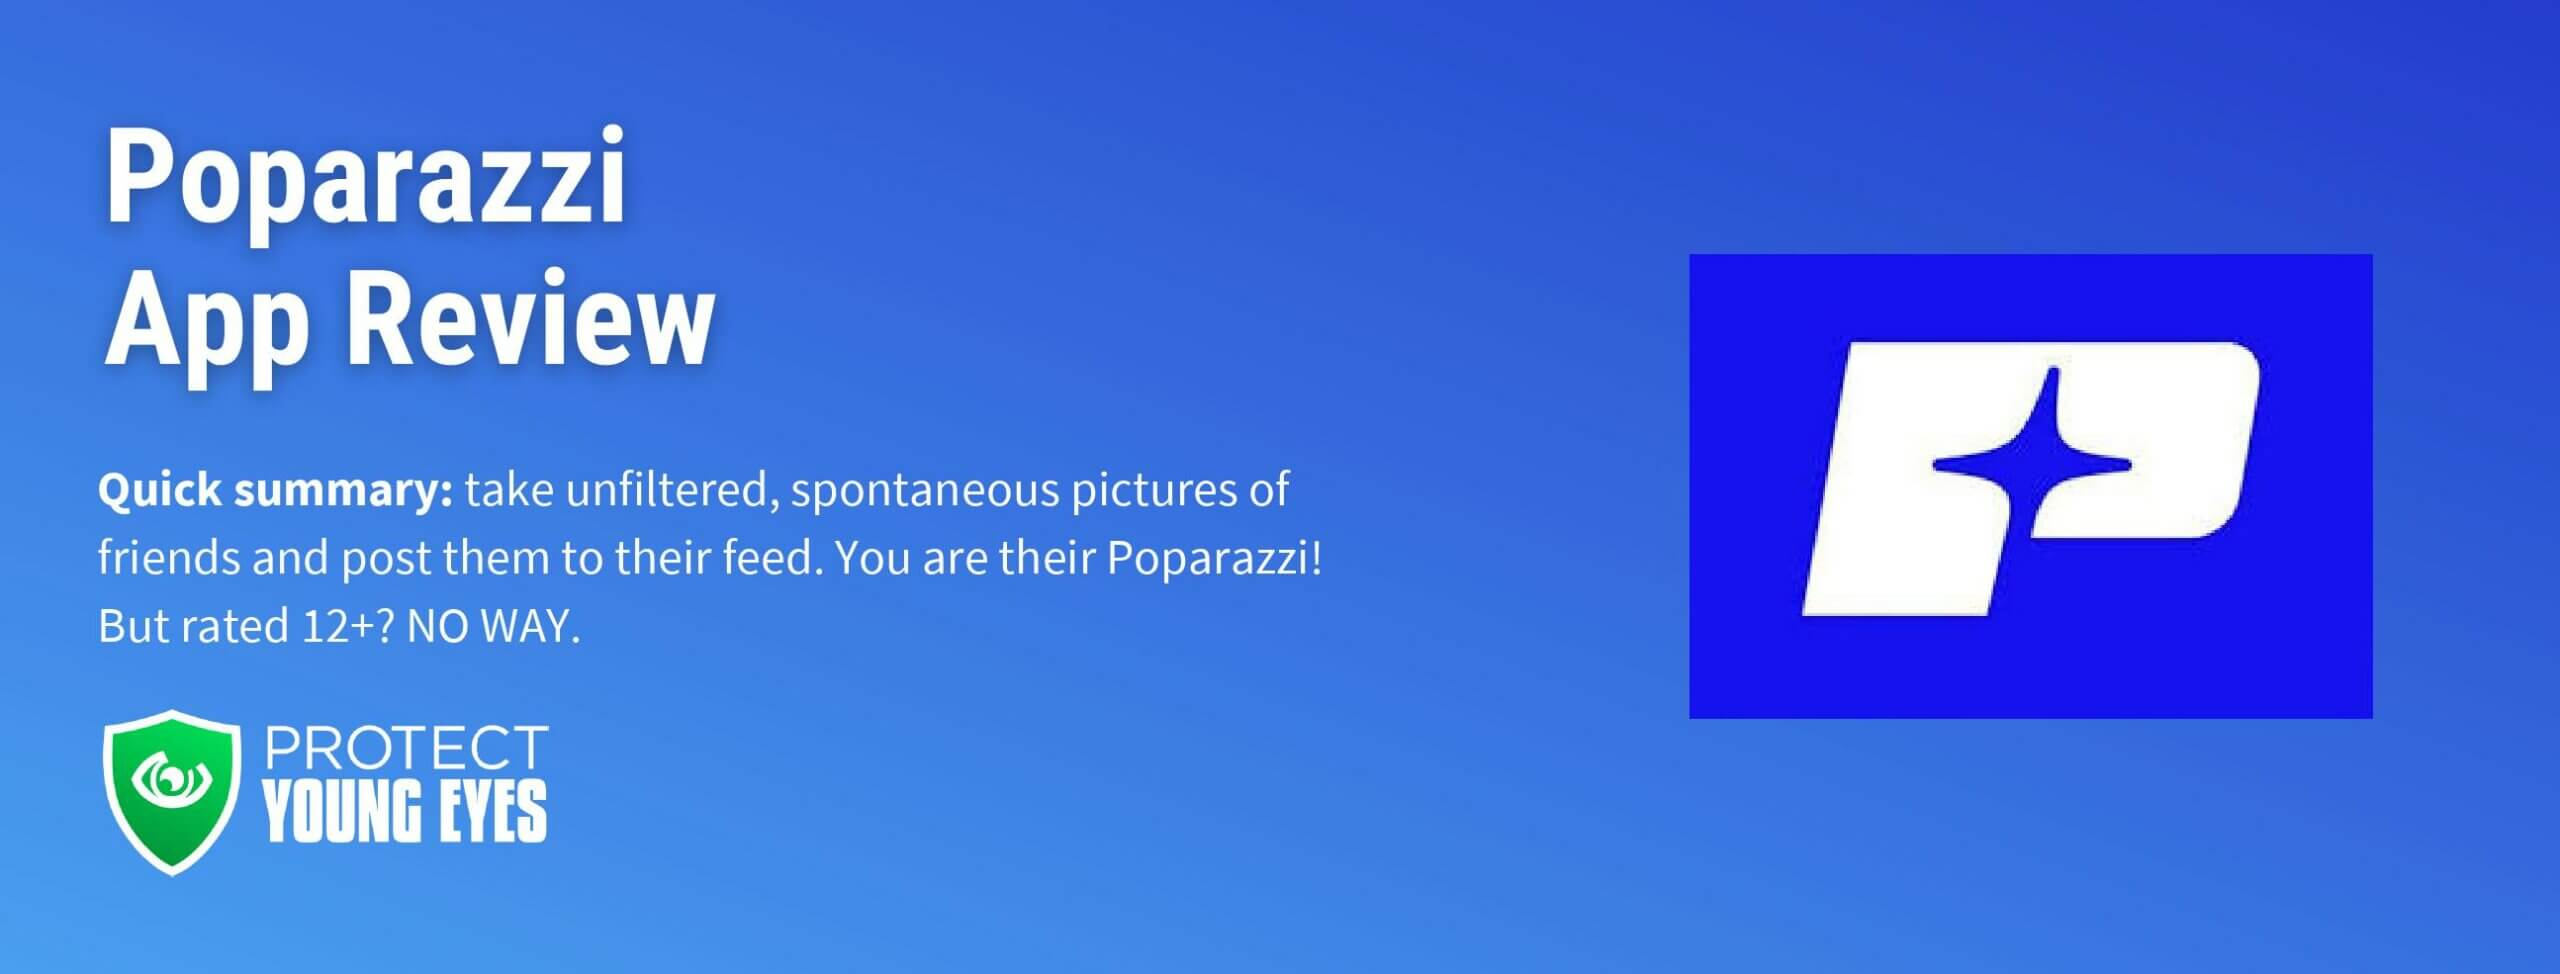 Poparazzi App Review Header Image from PYE